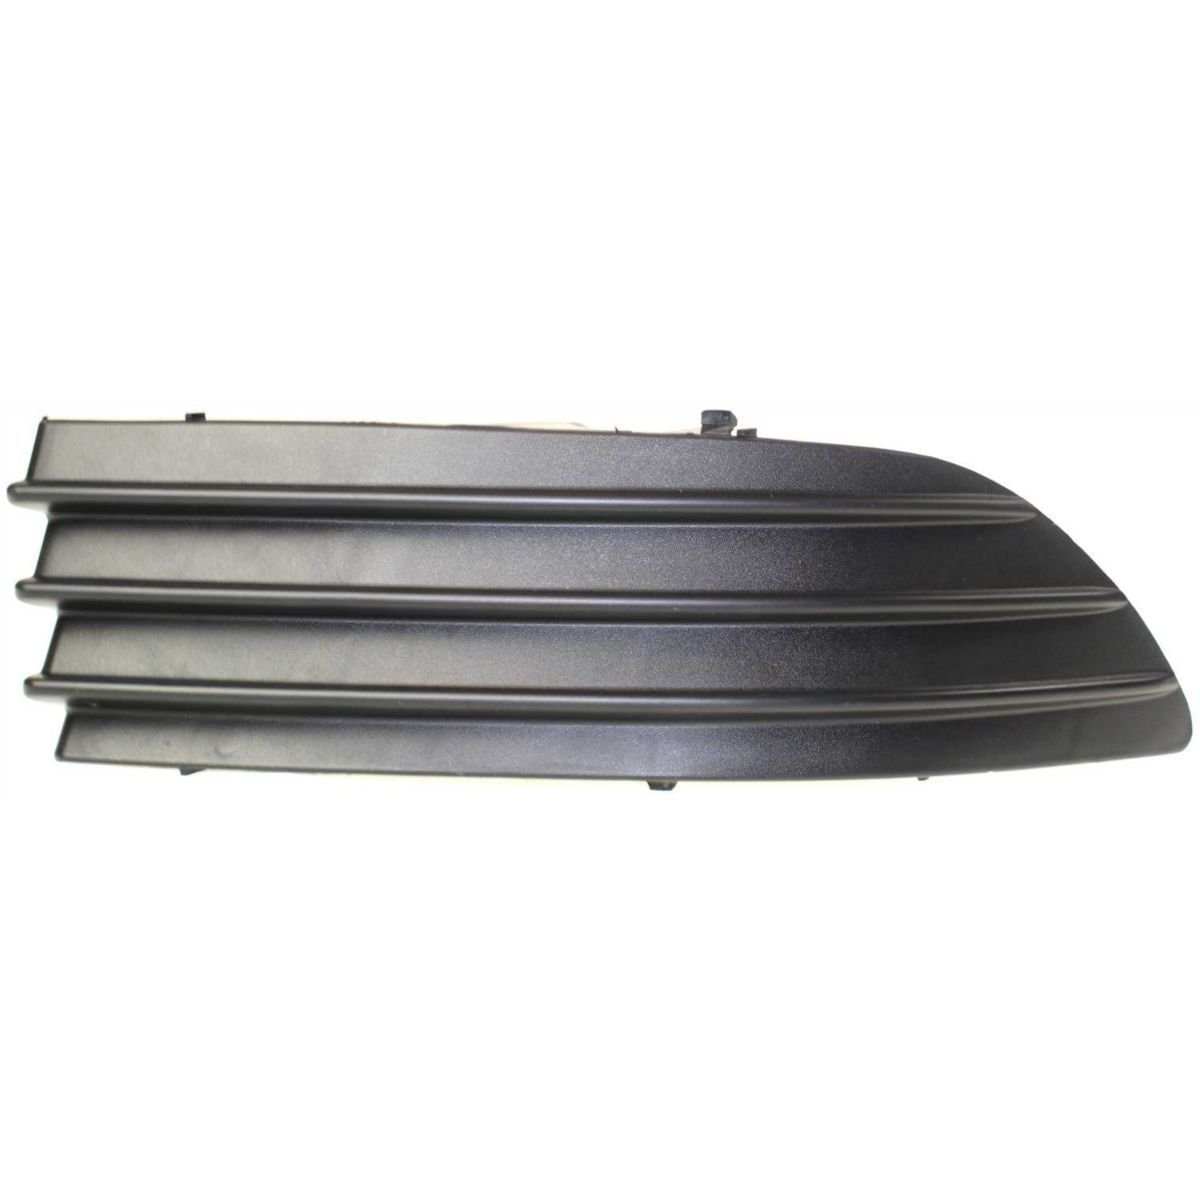 DAT 04-05 TOYOTA SIENNA BLACK BUMPER COVER GRILLE RIGHT PASSENGER SIDE TO1089109 DAT AUTO PARTS